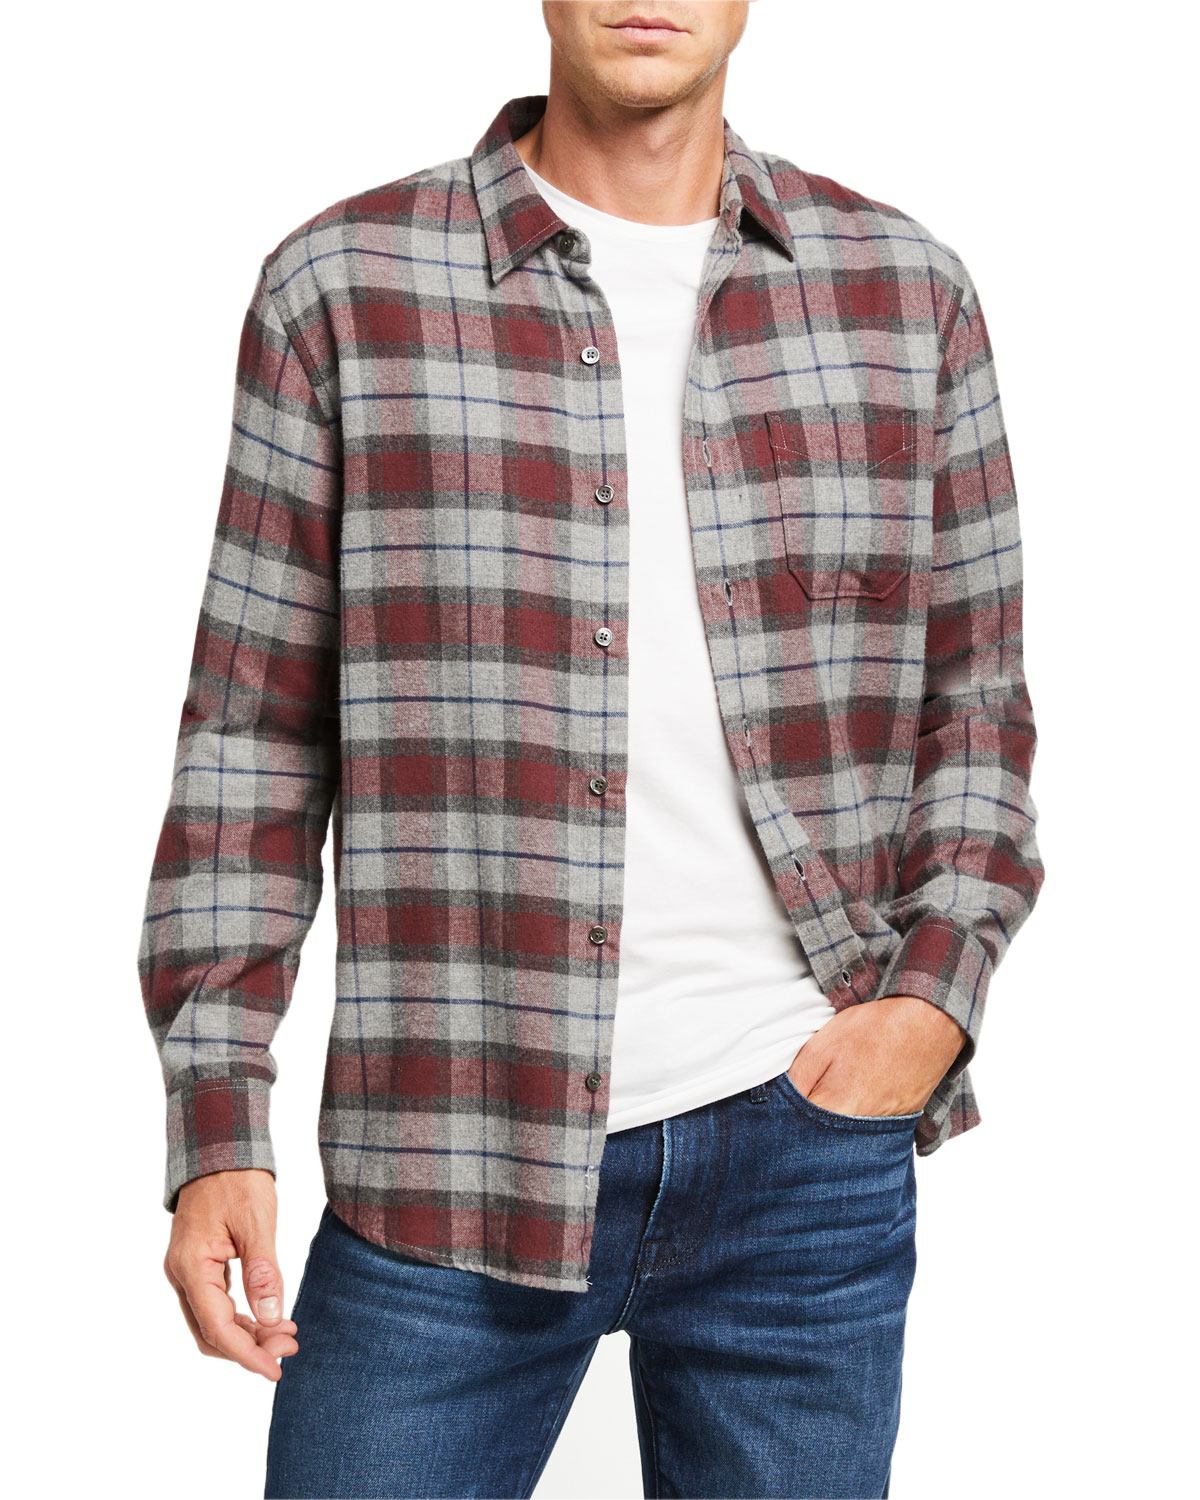 FRAME Men's Classic Brushed Plaid Sport Shirt in Red and Gray